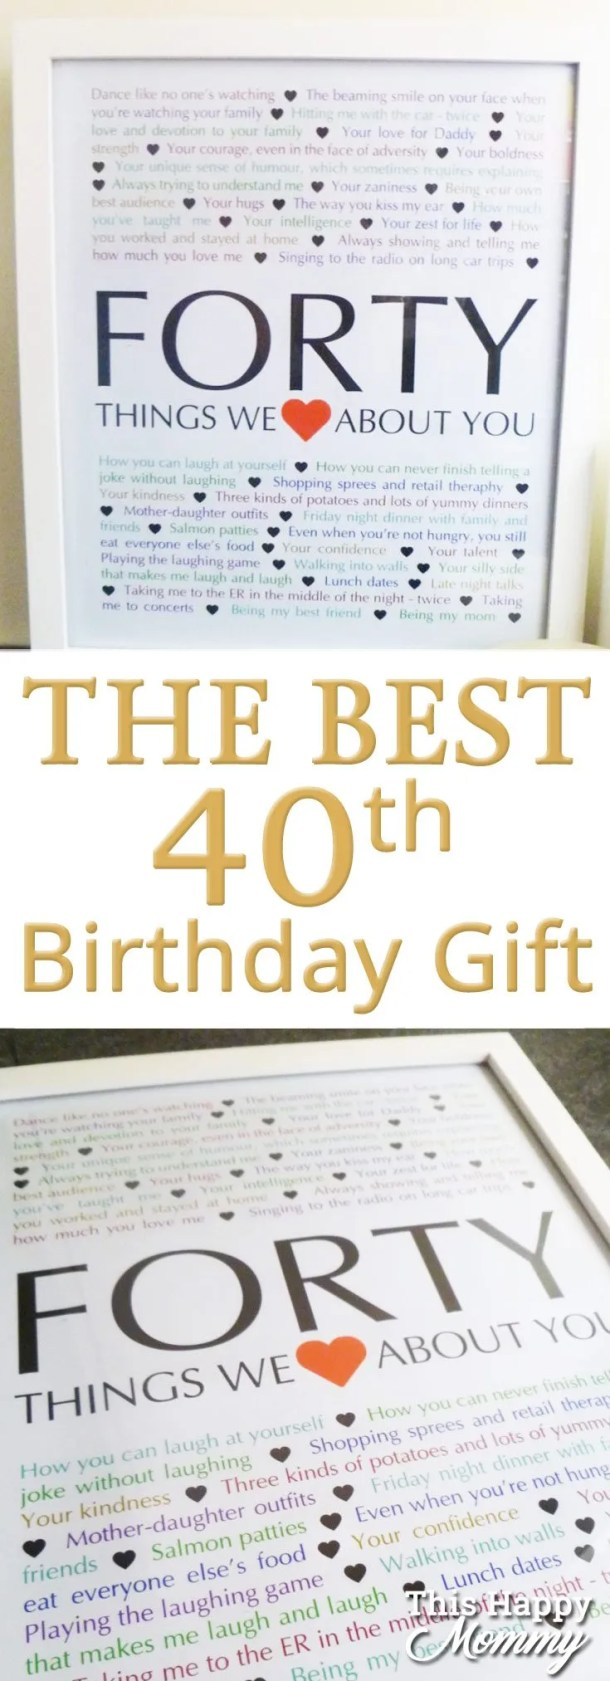 40 Things We Love About You -- The perfect homemade 40th birthday gift. | 40th birthday gift for dad | 40th birthday gift for mom | birthday party gift for adults | the best 40th birthday gift #40birthday #birthdaygift | thishappymommy.com